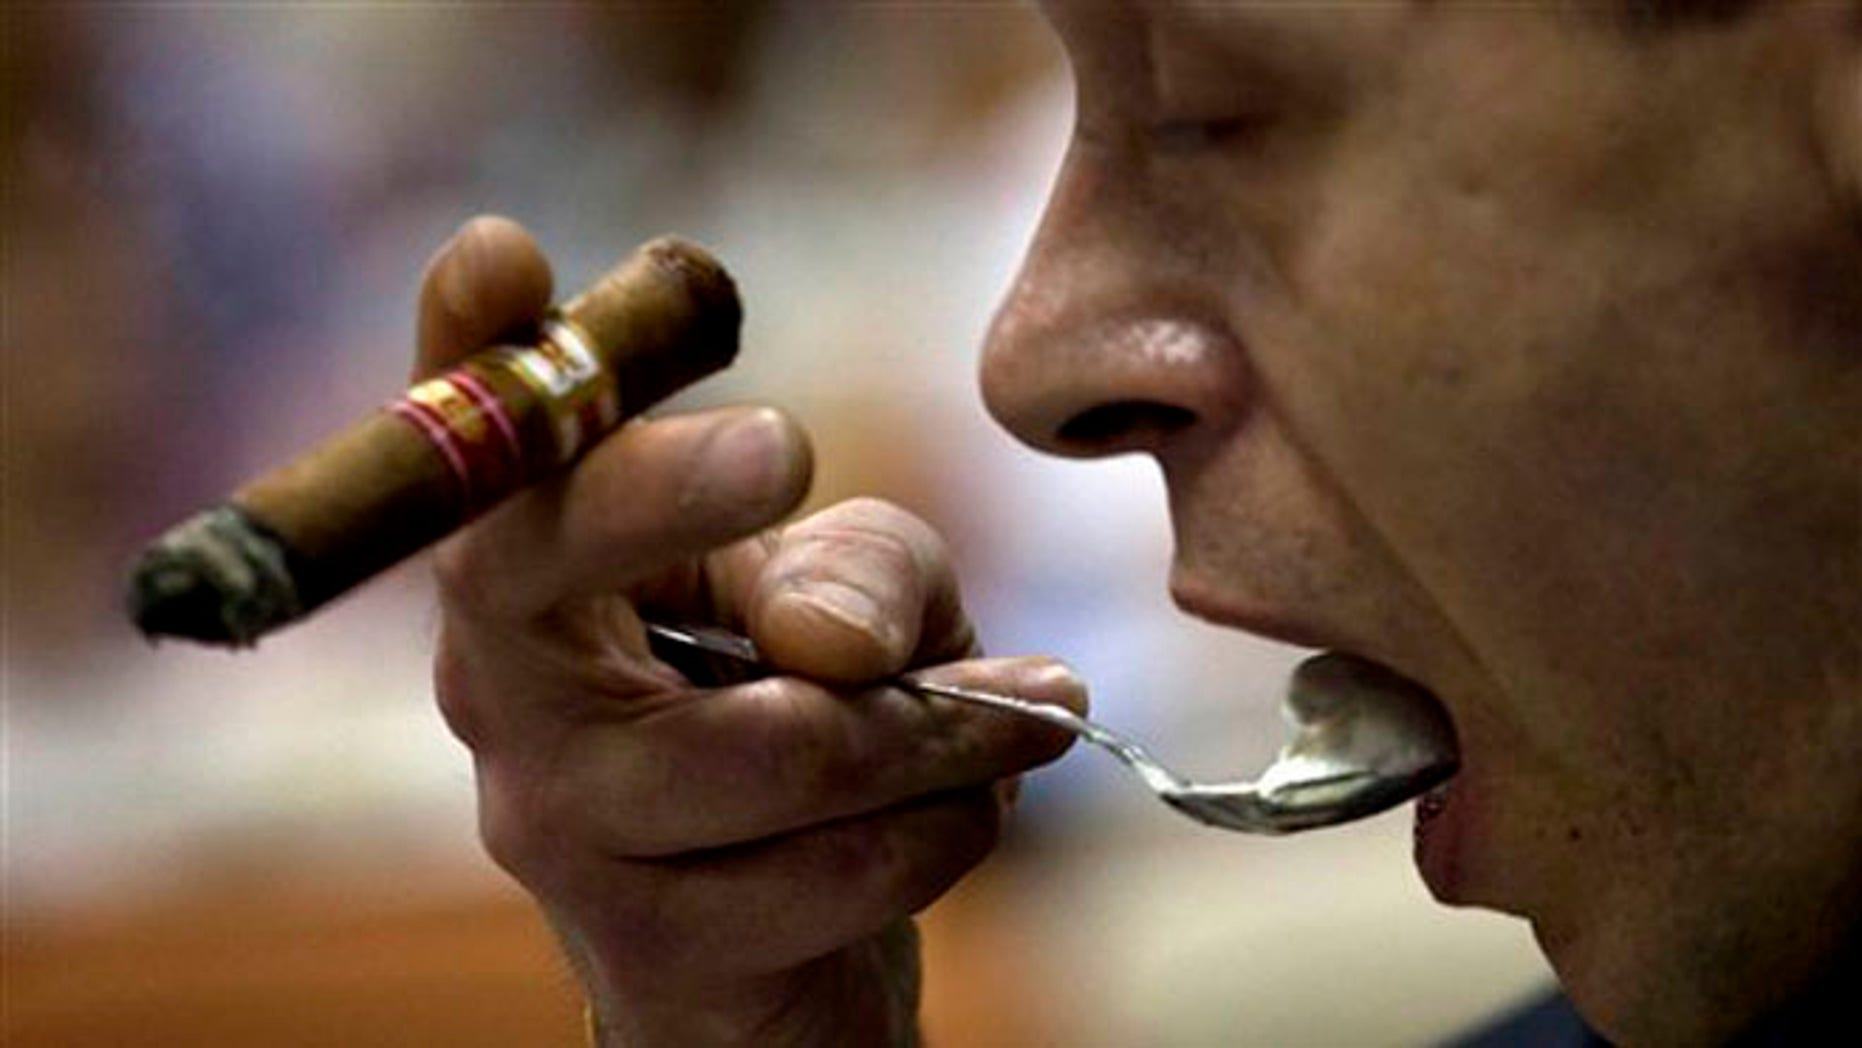 A man eats a dessert as he smokes a cigar during a tobacco cooking event at the 15th Cigar Festival in Havana, Cuba.